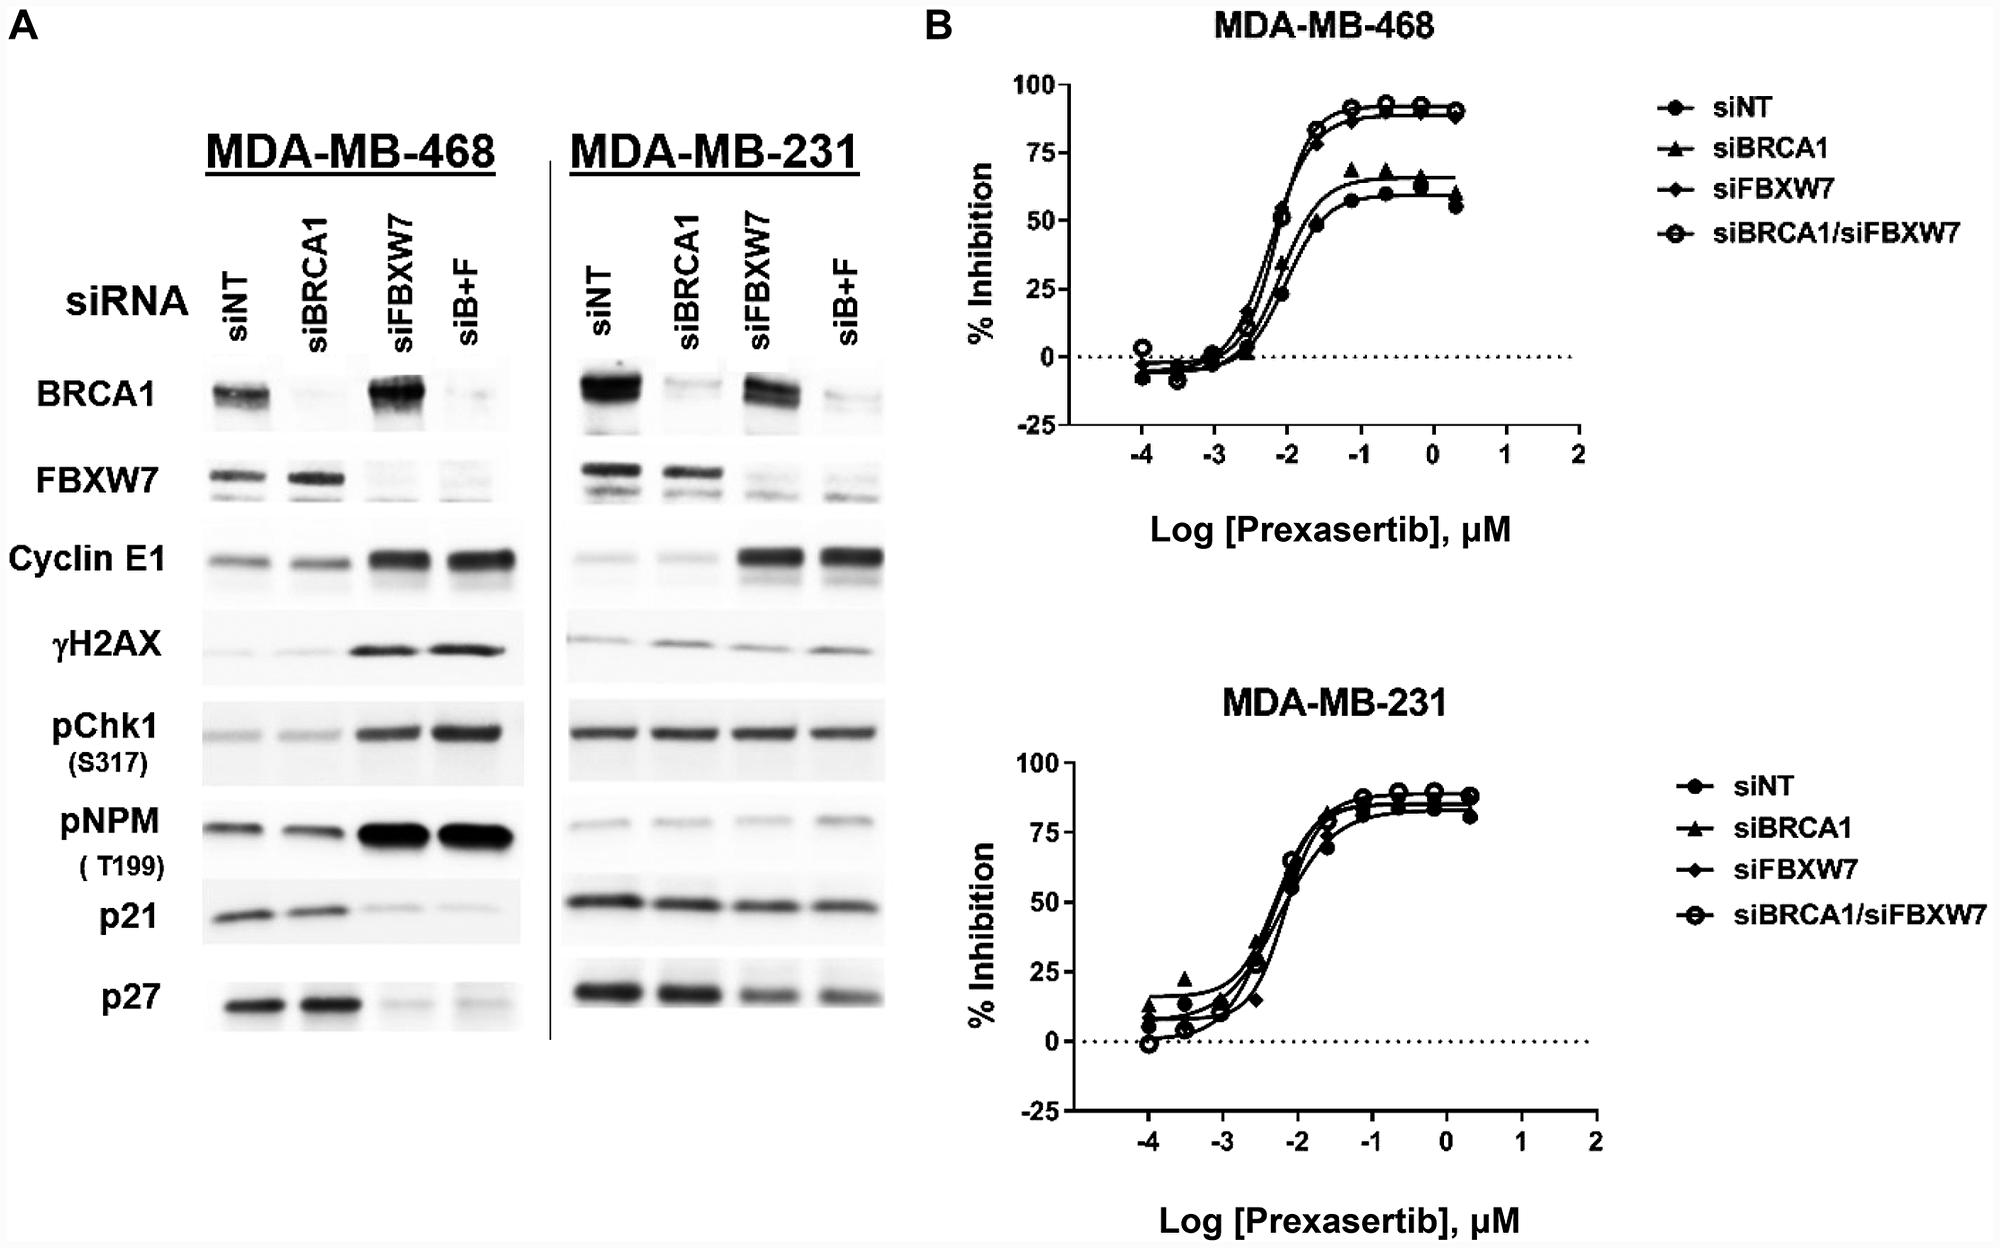 Effect of FBXW7 knockdown on cyclin E1 levels and prexasertib sensitivity.